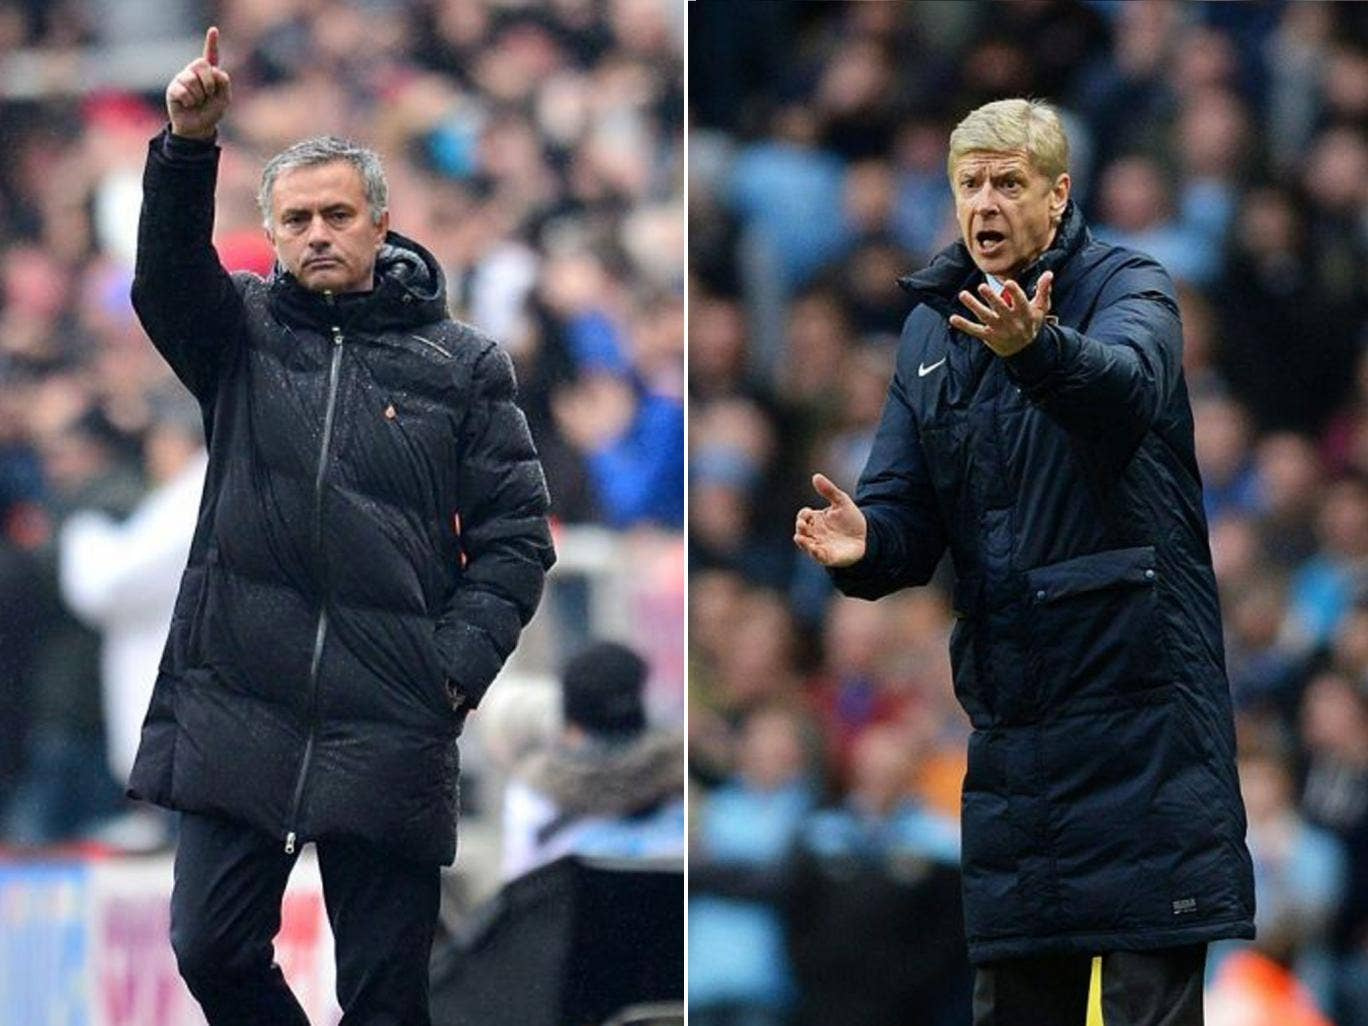 Mourinho is one of very few managers to enjoy a superior record against the Arsenal boss, having never lost to Wenger